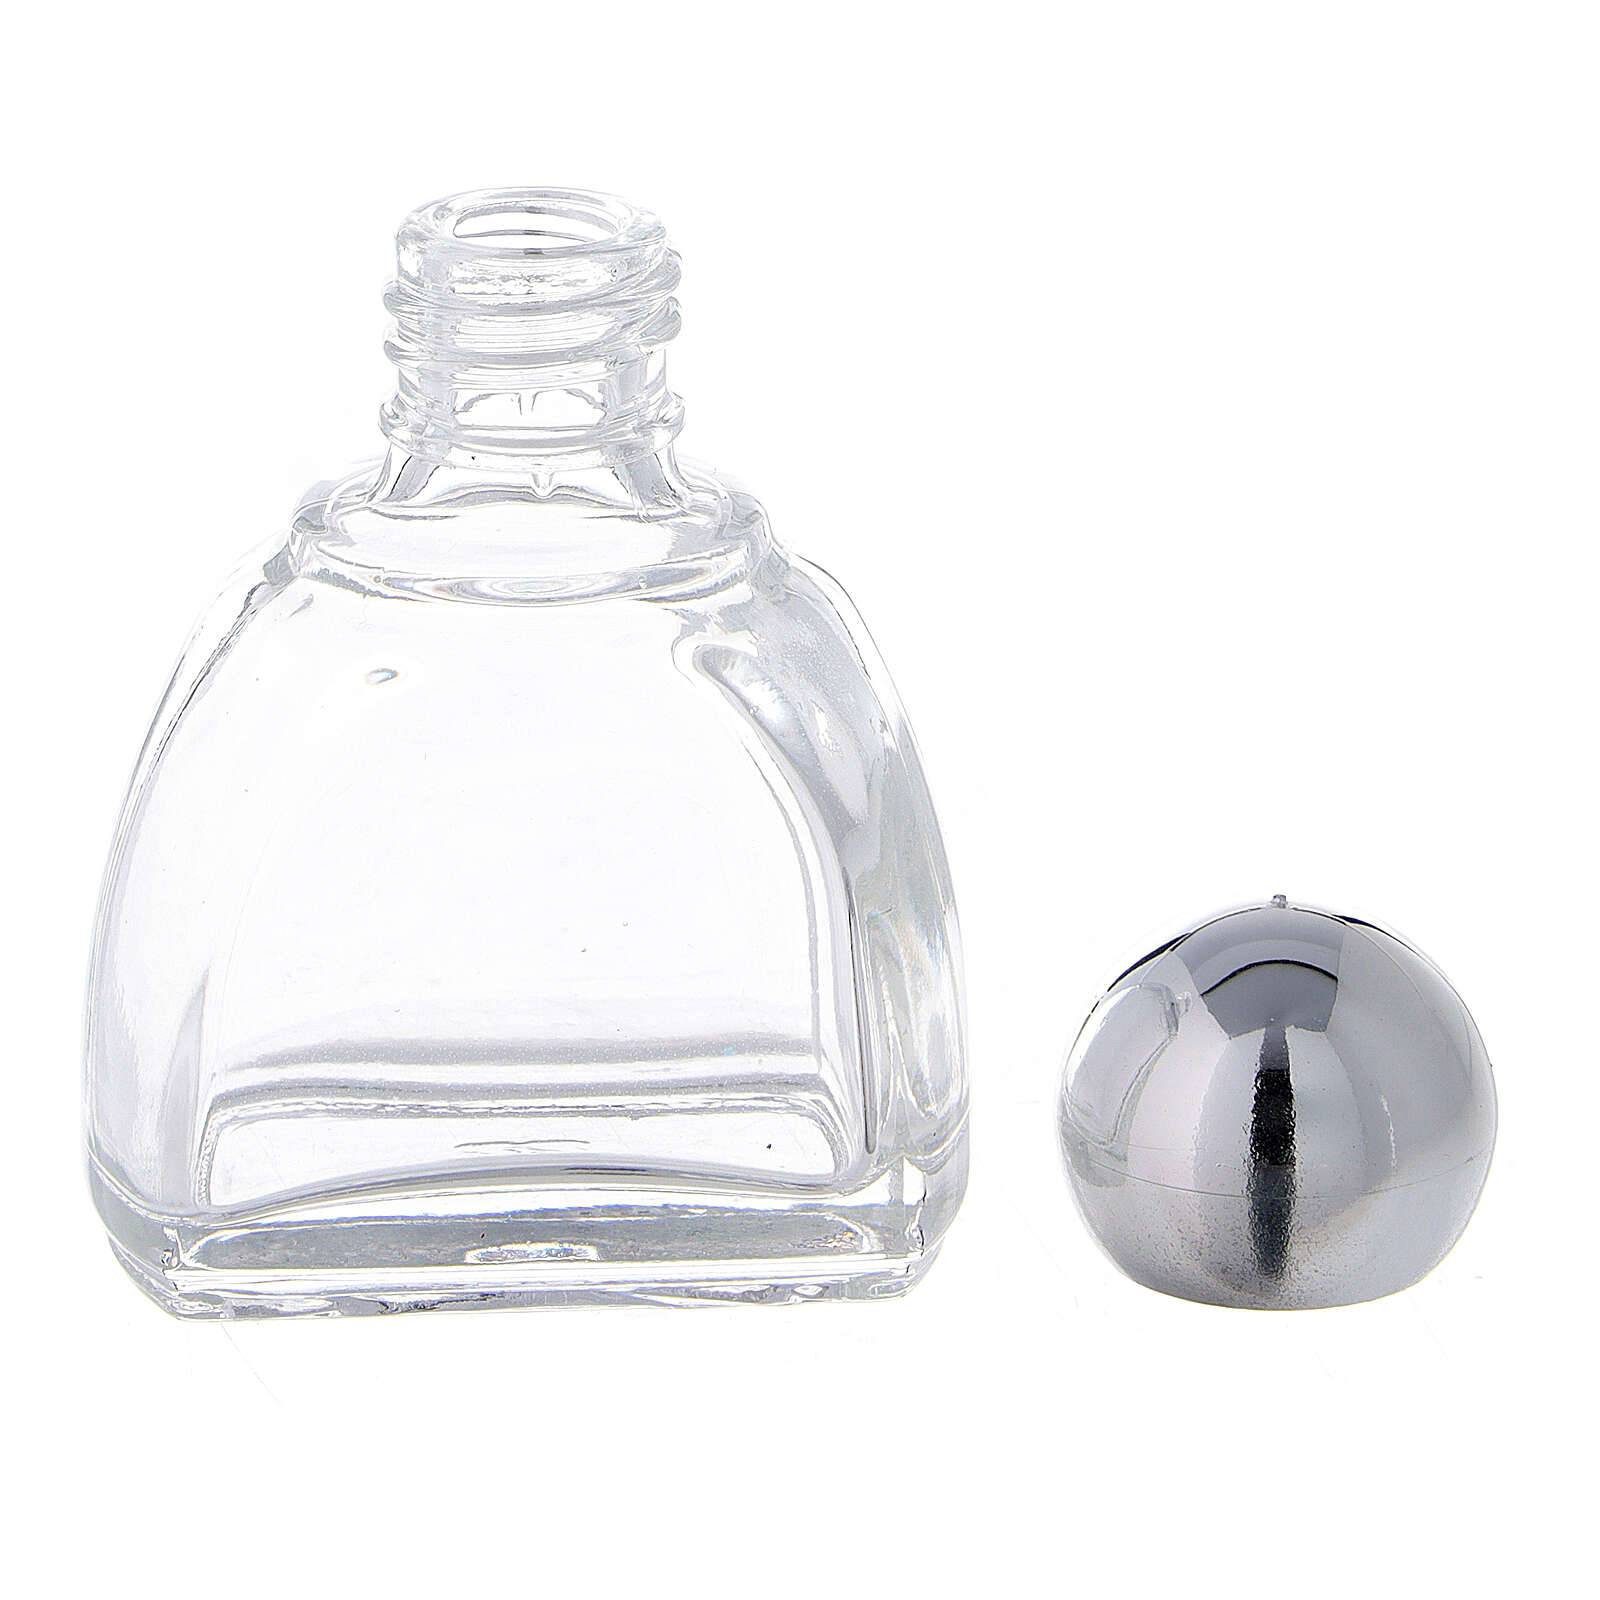 12 ml holy water glass bottle with silver plastic cap (50-PIECE PACK) 3